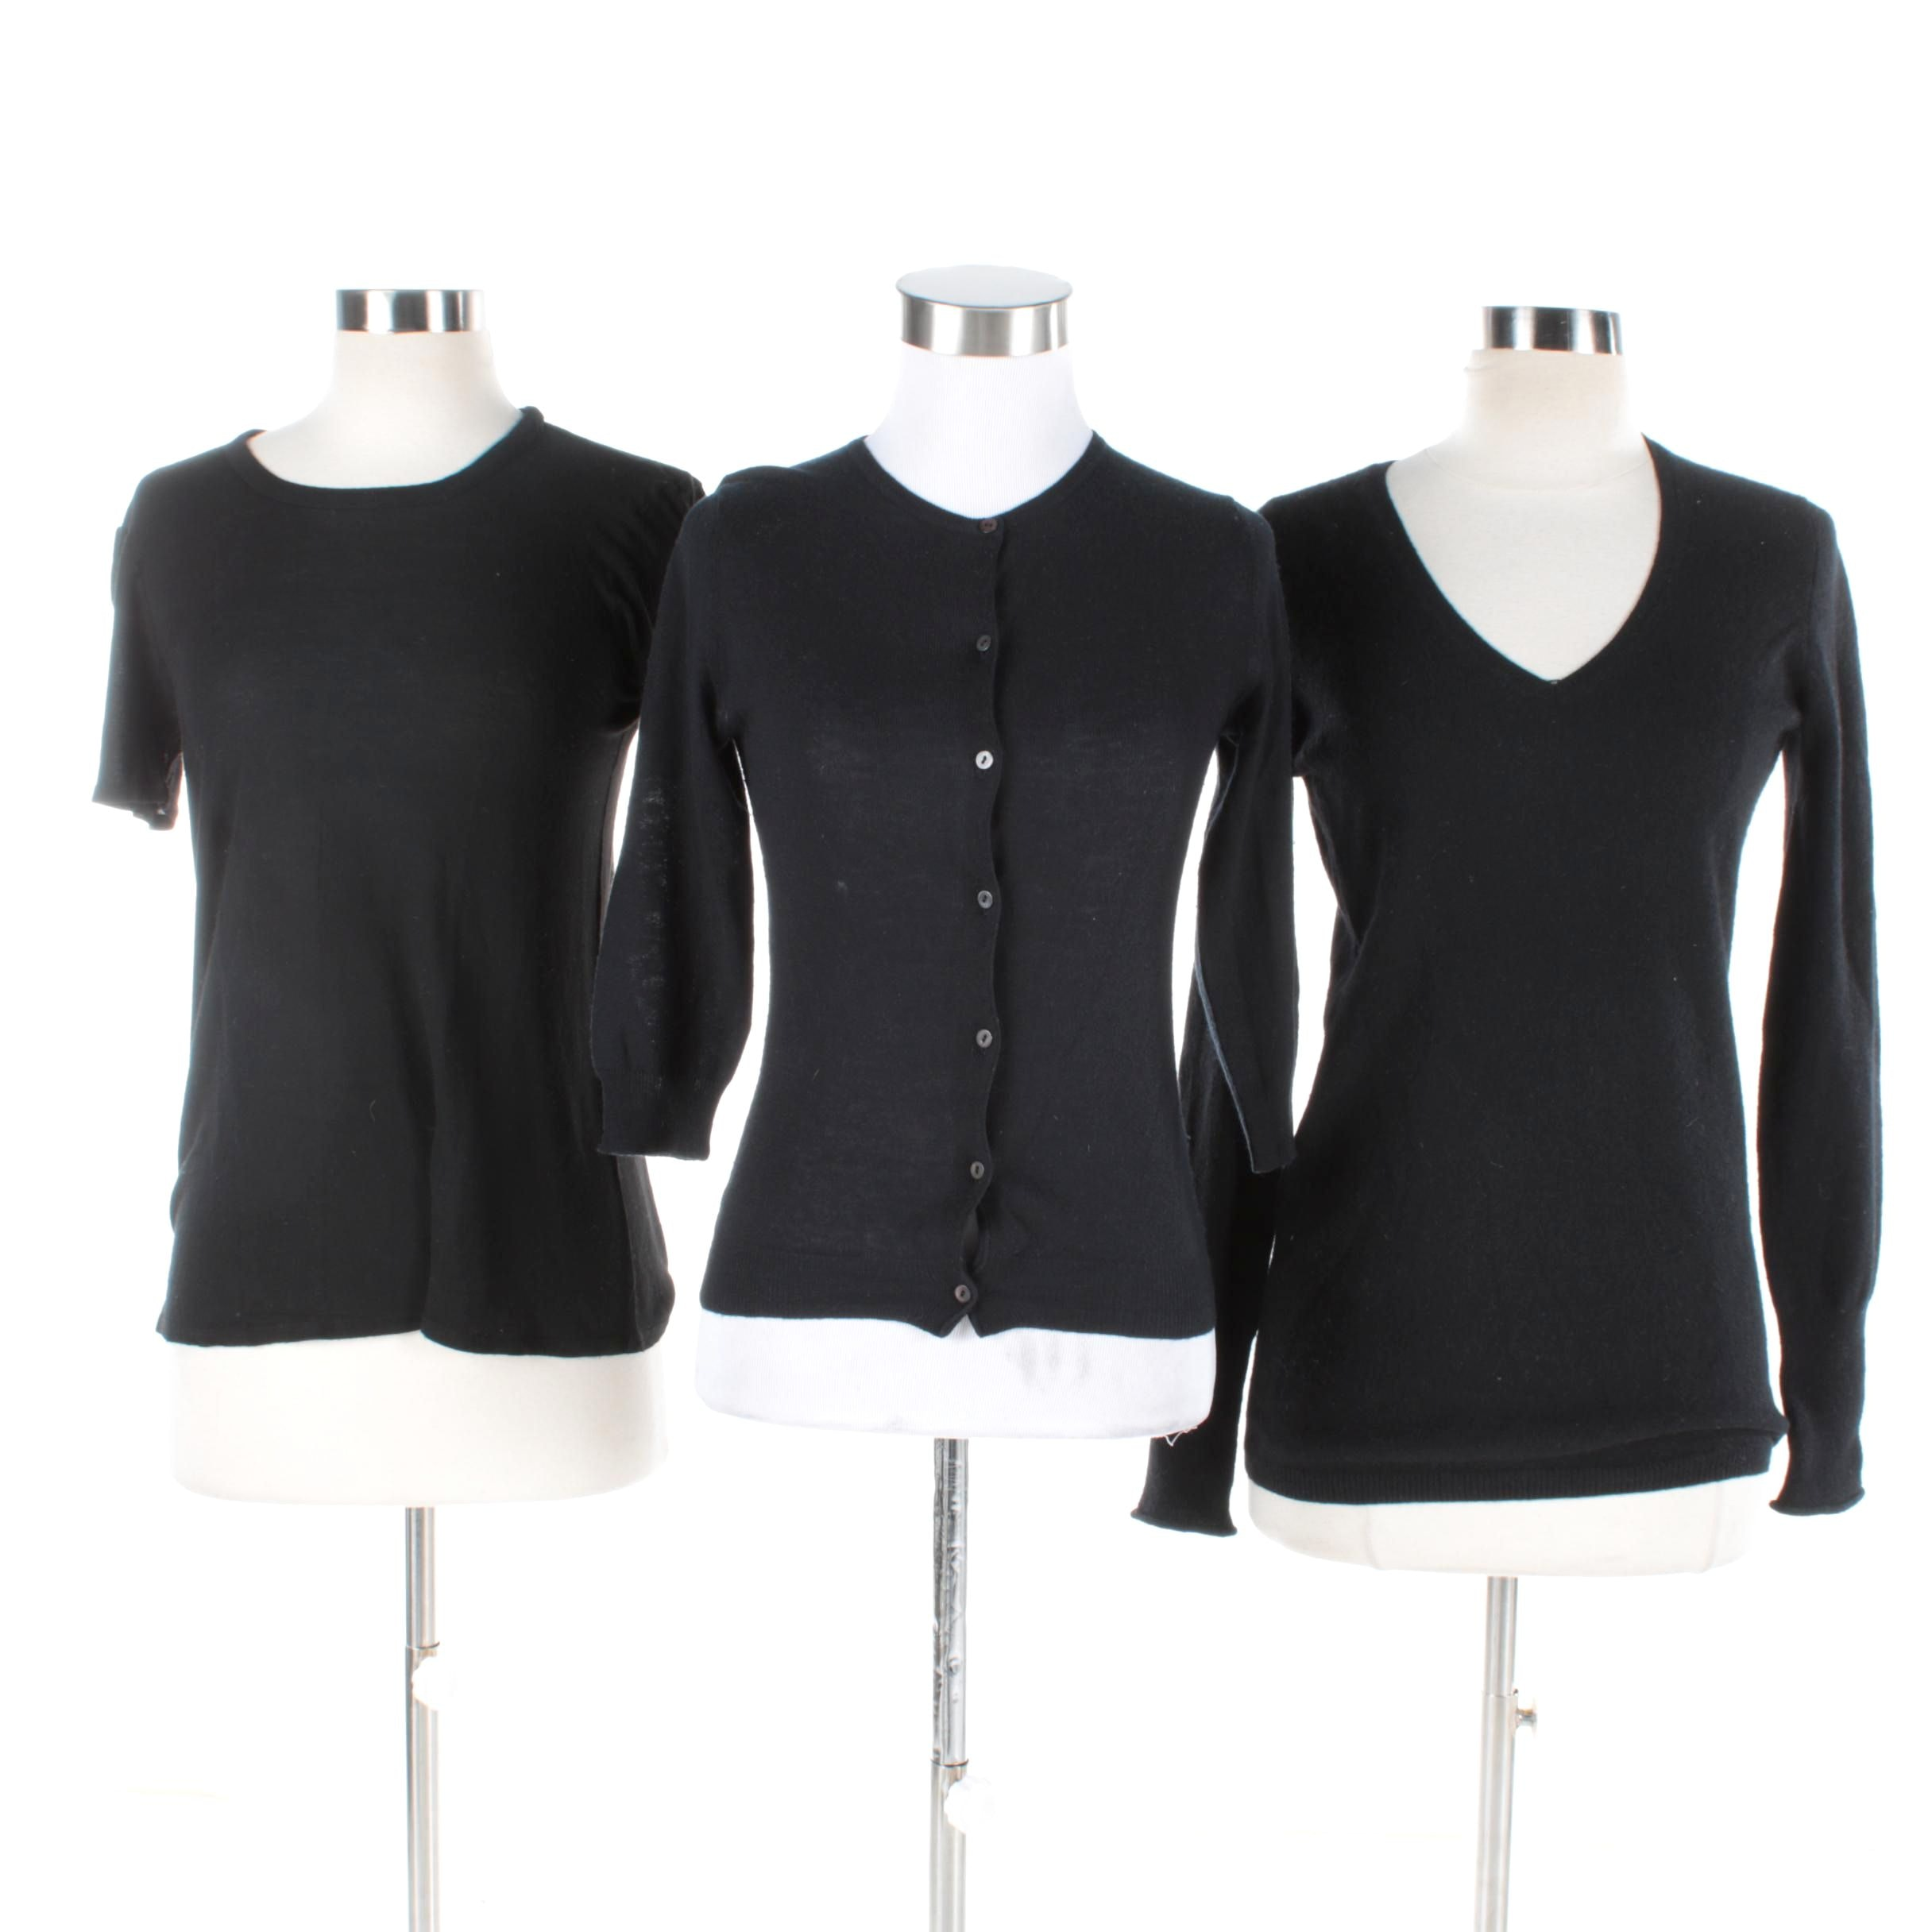 Women's Black Cashmere Tops Including Juicy Couture and The Row